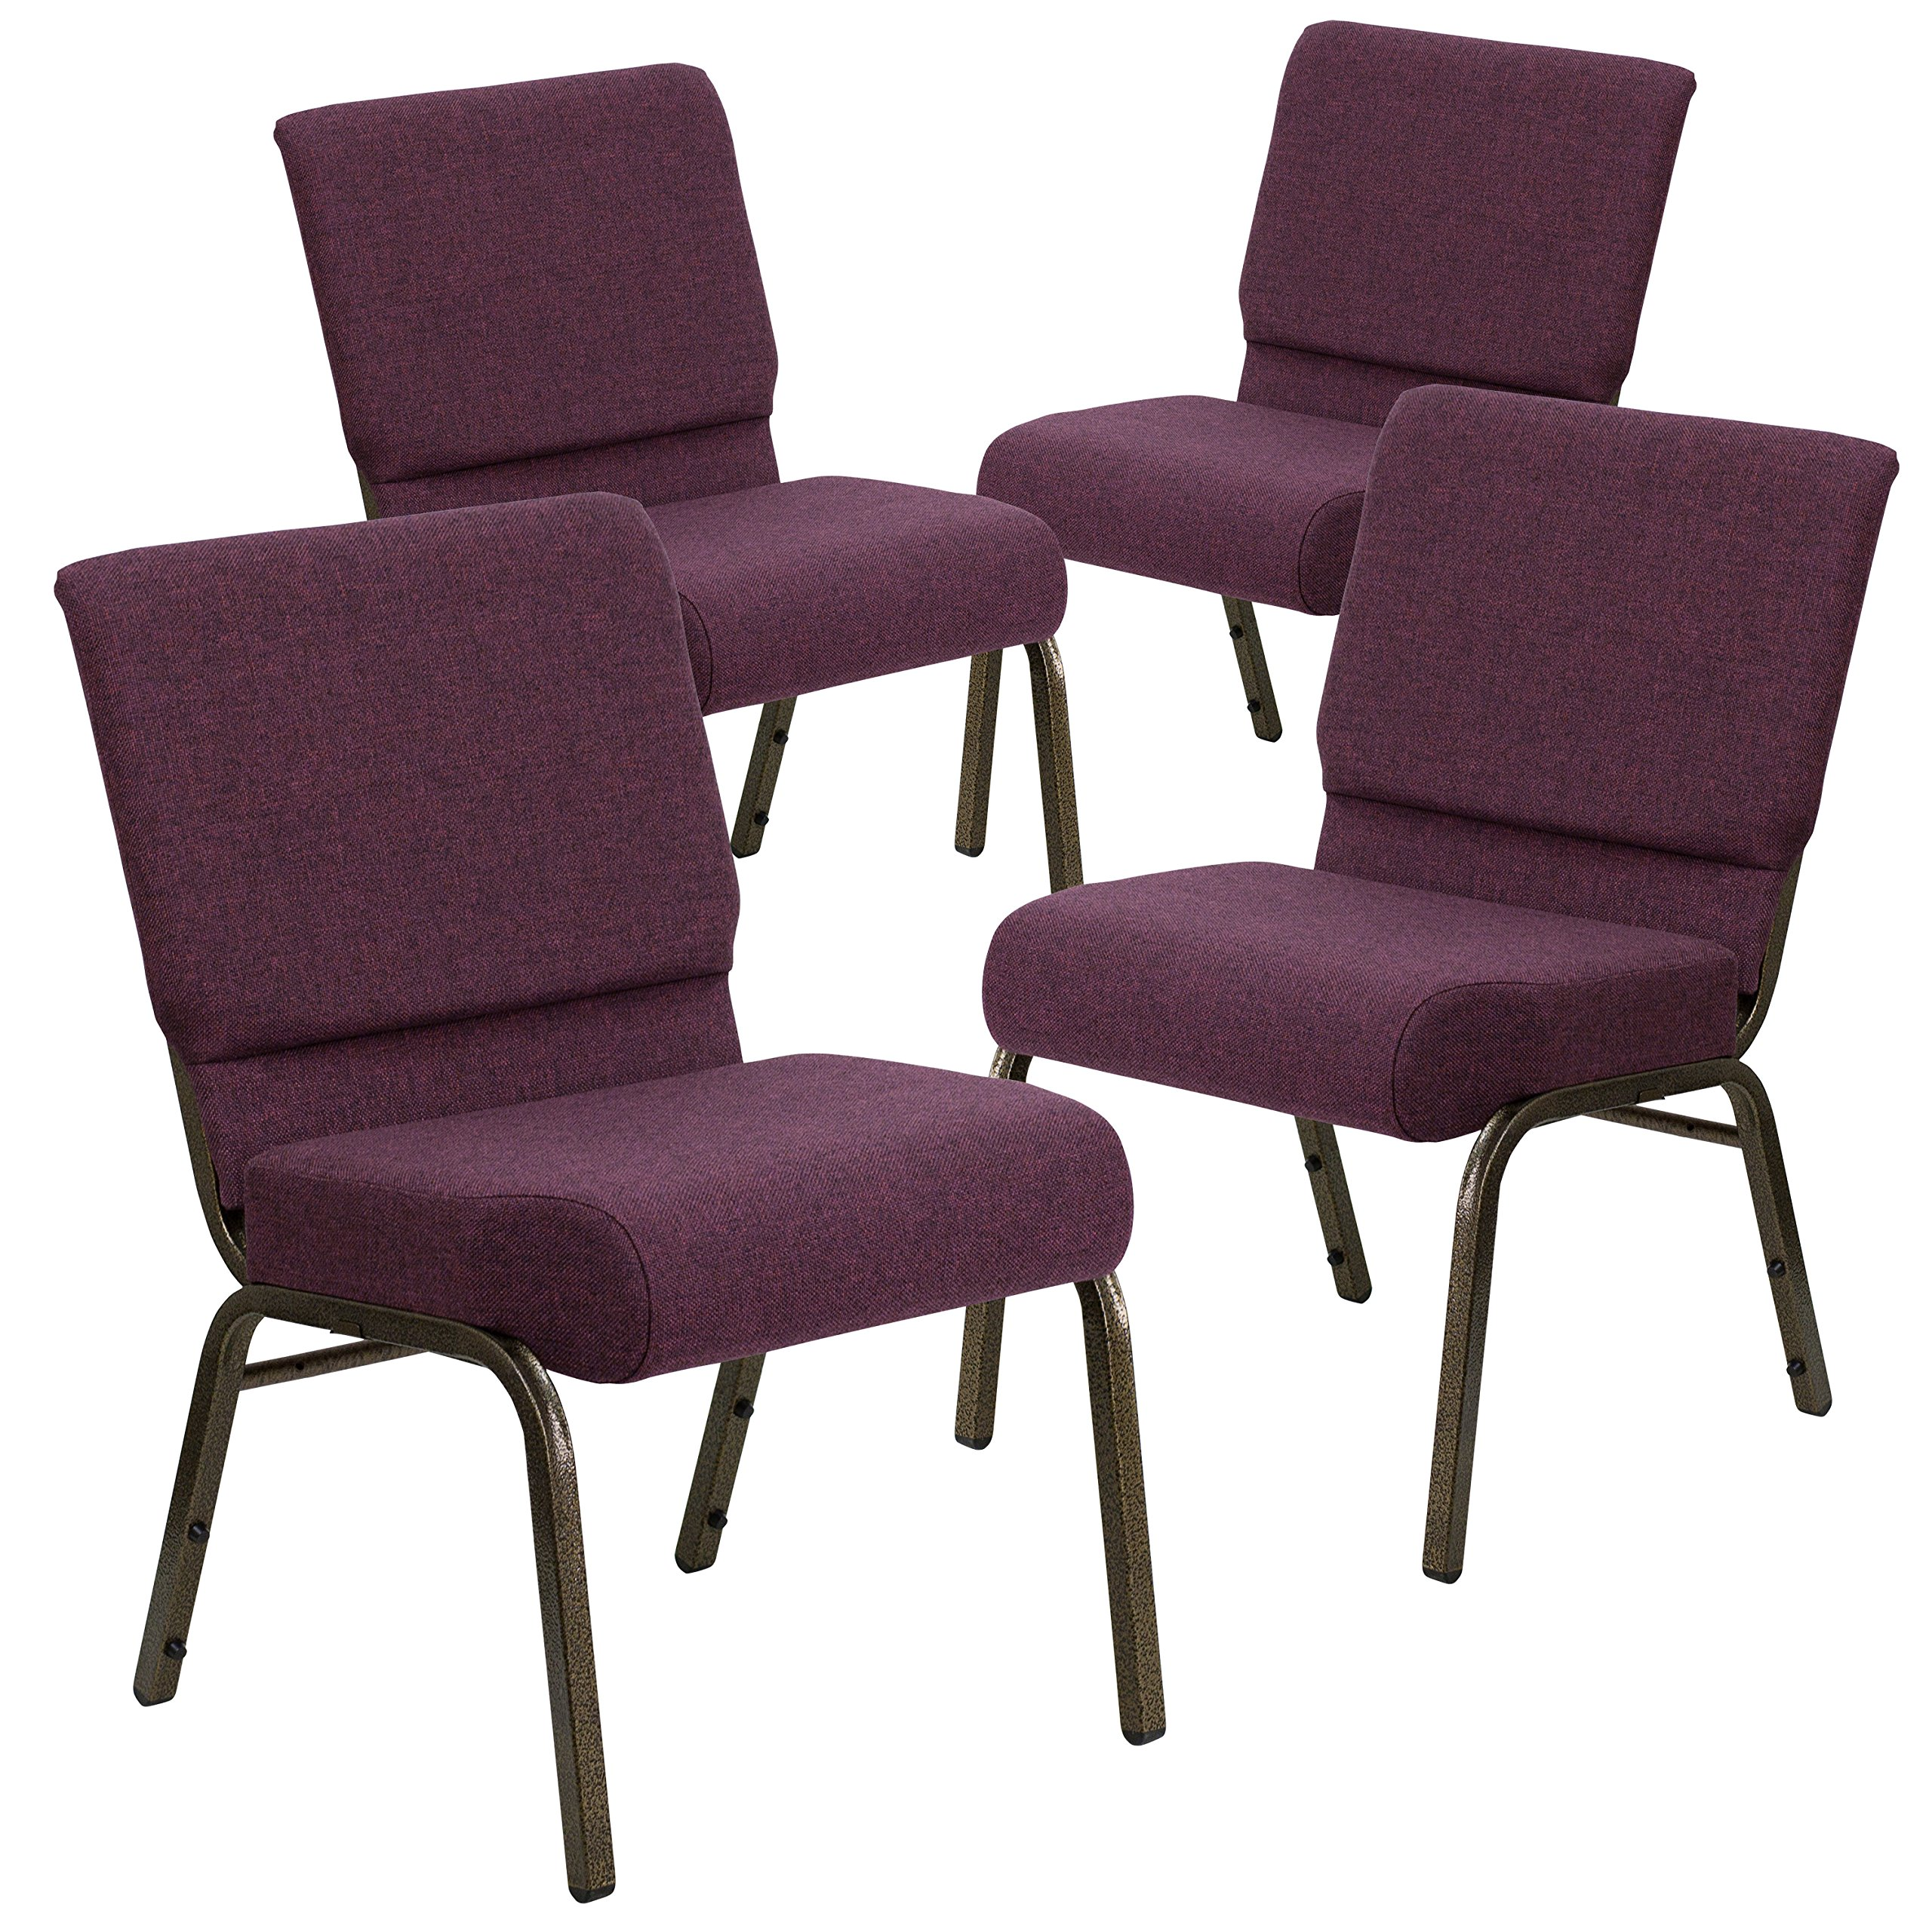 Flash Furniture 4 Pk. HERCULES Series 21''W Stacking Church Chair in Plum Fabric - Gold Vein Frame by Flash Furniture